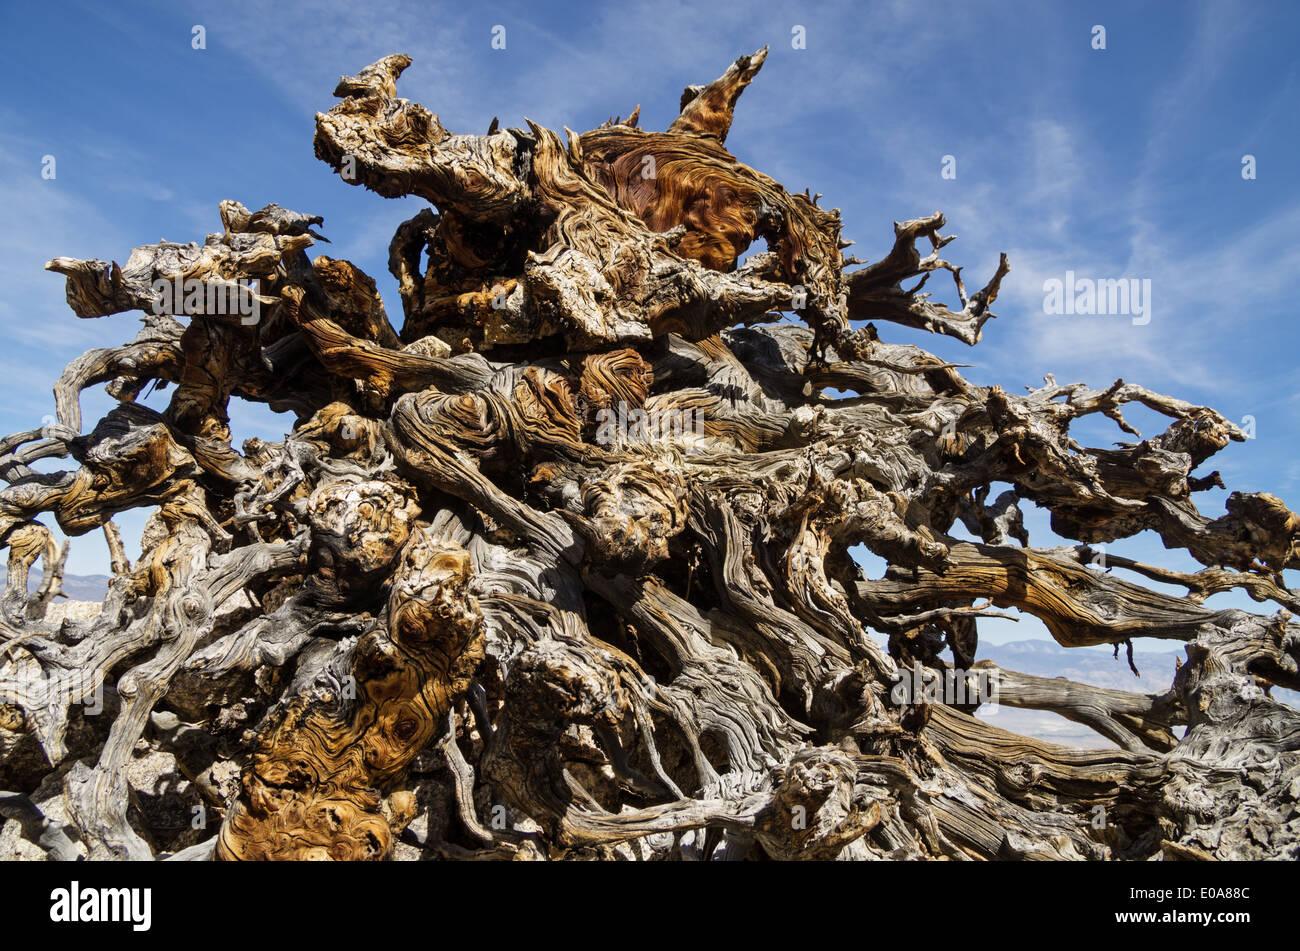 exposed and weathered pine tree root system with contorted branches - Stock Image